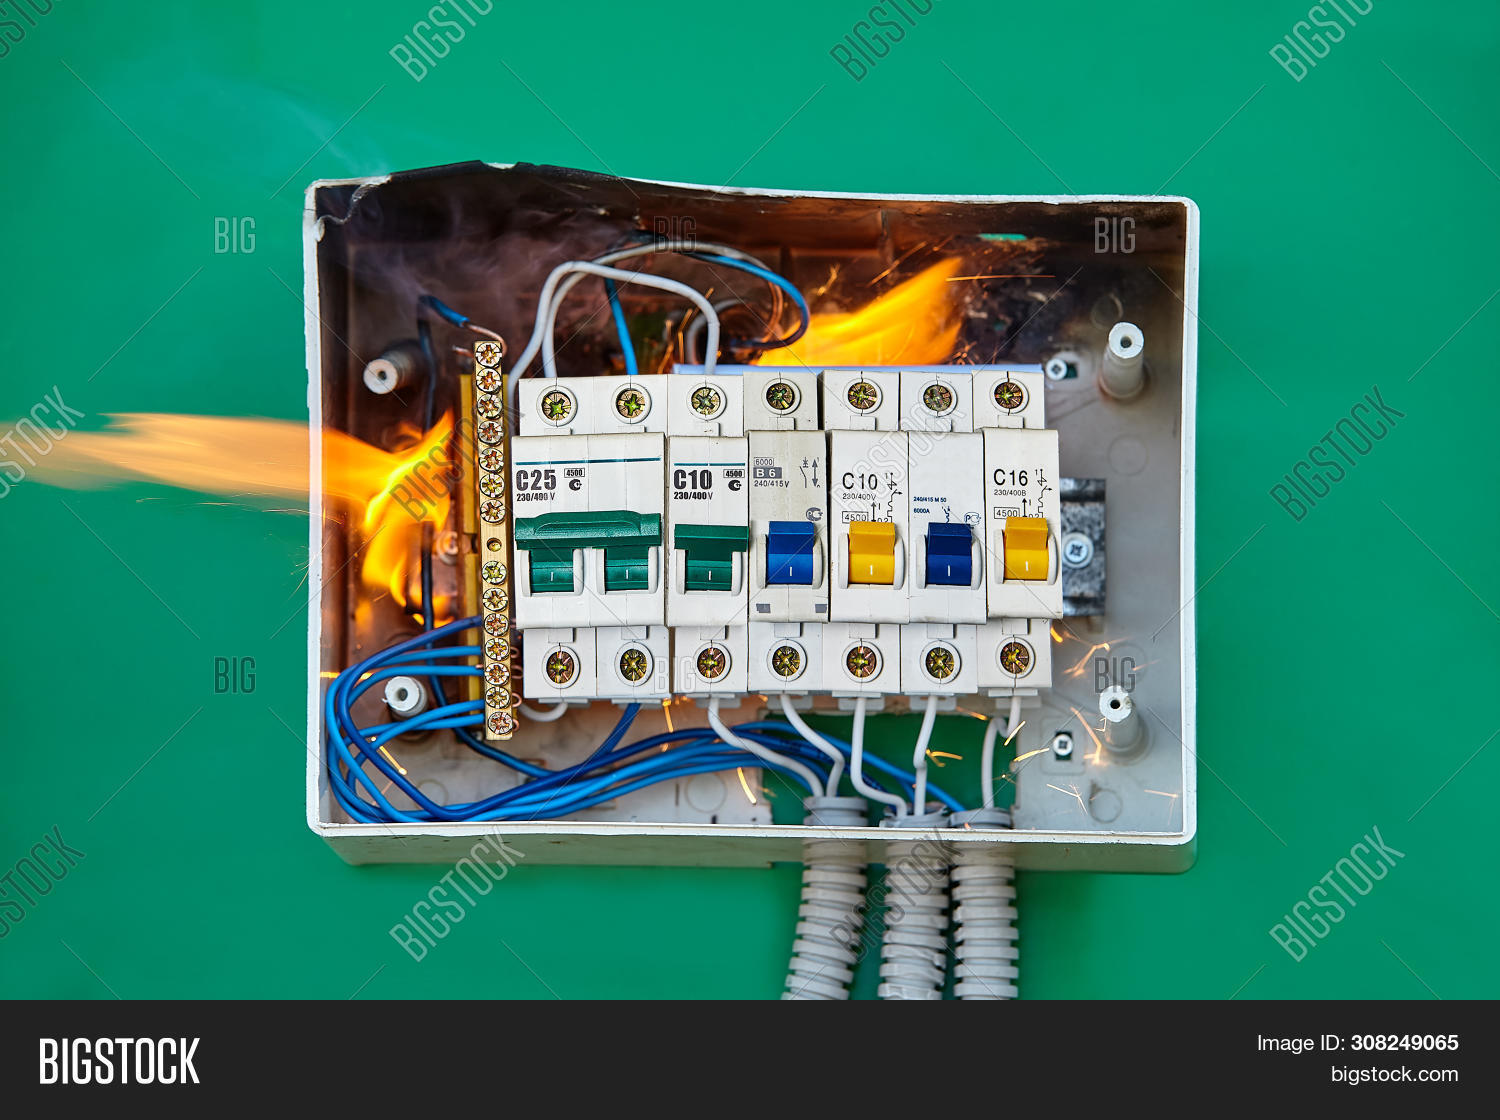 bad,box,breaker,broken,burn,burned,burning,burnout,burnt,cable,circuit,closeup,combustion,damaged,danger,dangerous,defective,electric,electrical,electricity,equipment,failure,faulty,fire,flame,fuse,hazard,home,house,nobody,overloaded,power,problem,process,protect,risk,security,smoke,surge,switchboard,system,voltage,wall,wire,wiring,wrong